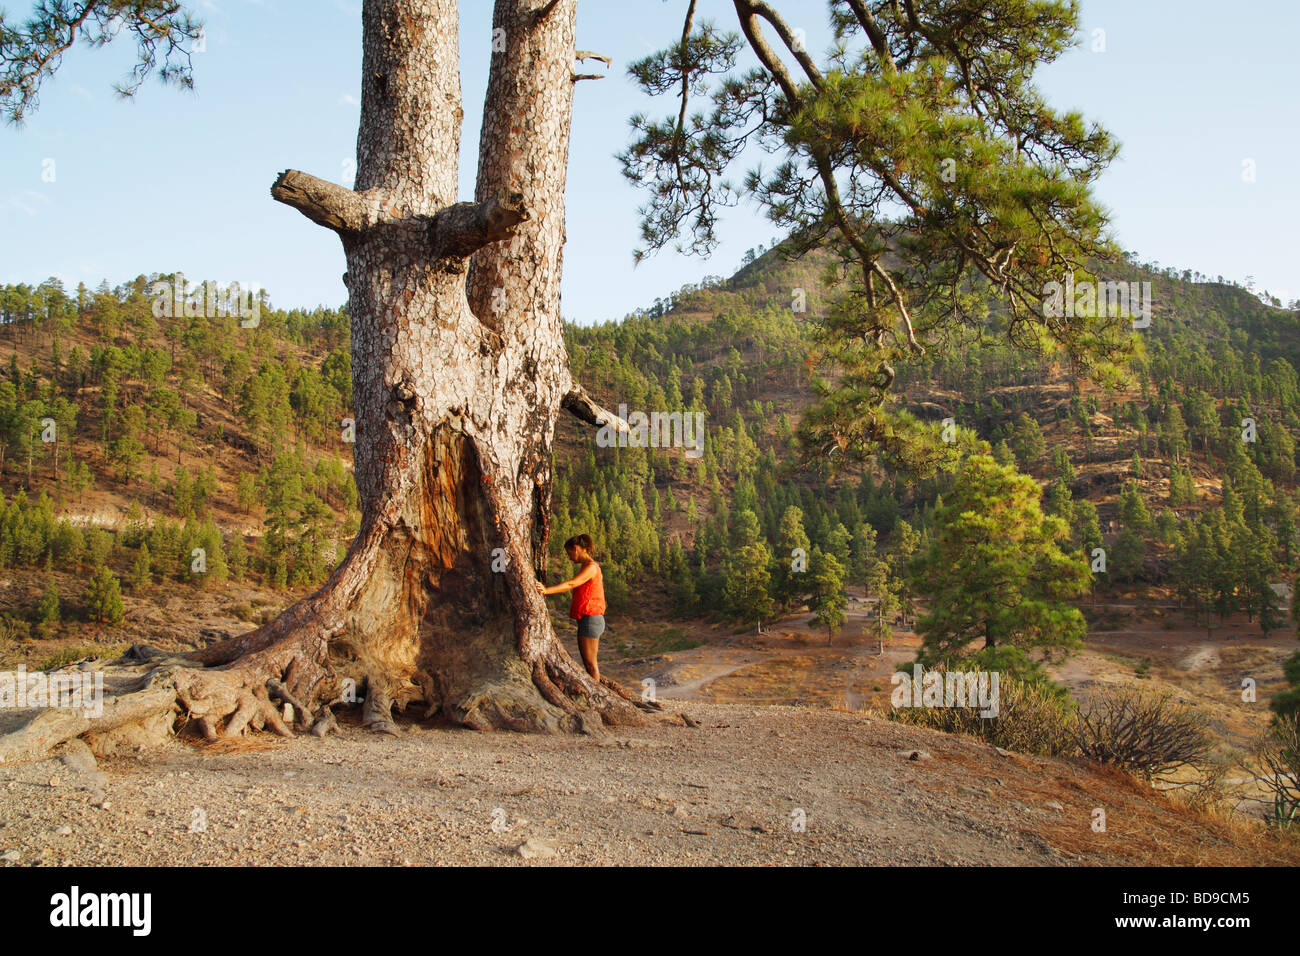 Female tourist at base of large canary pine tree on Gran Canaria - Stock Image